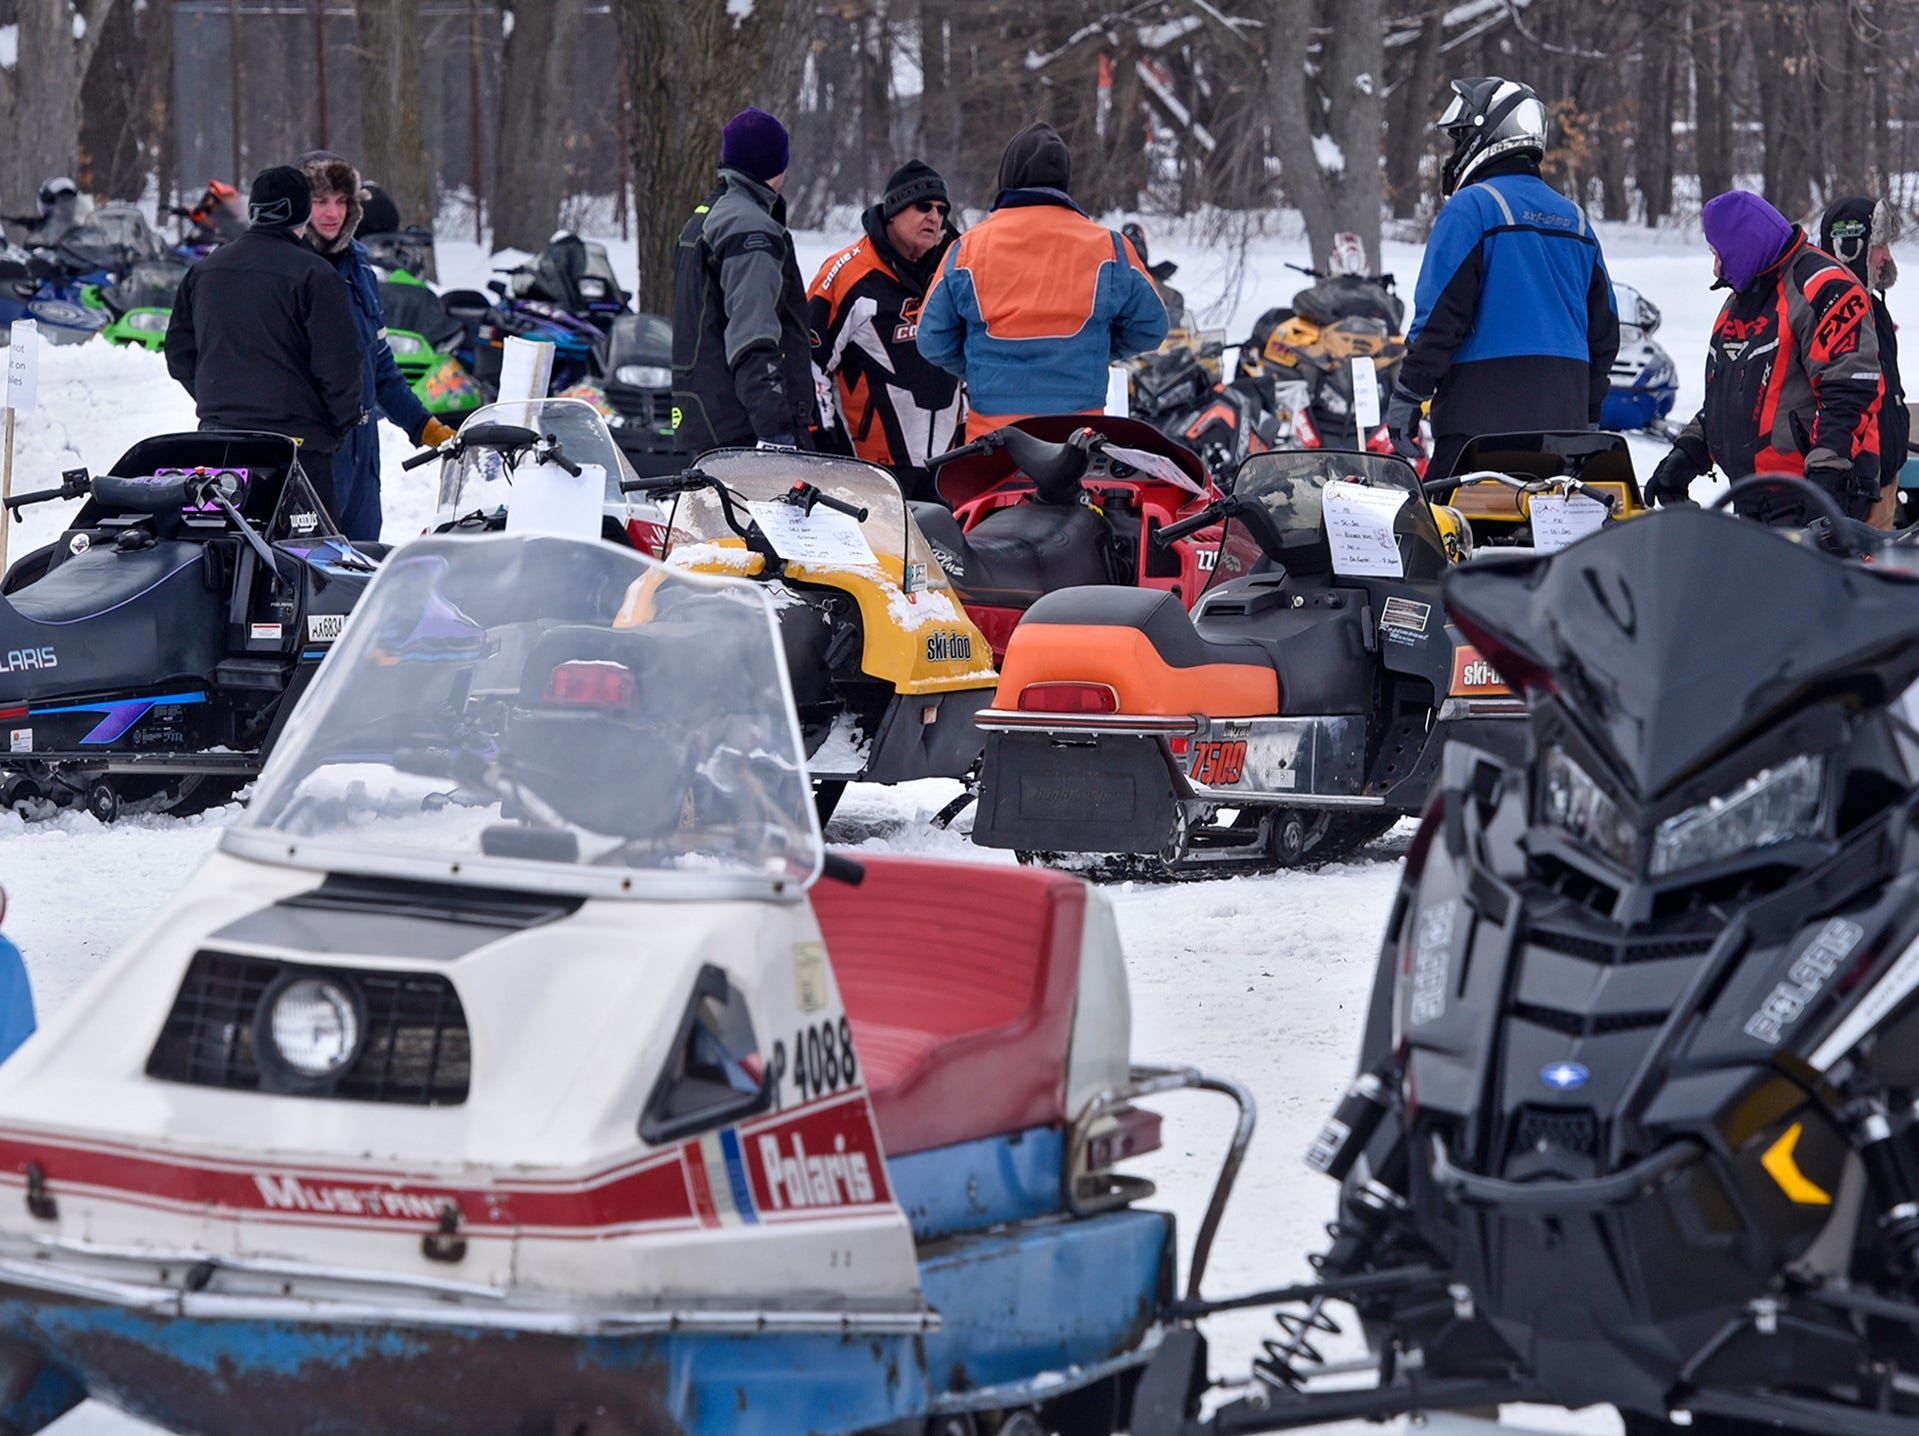 People gather for a vintage snowmobile show and trail ride Saturday in St. Stephen.